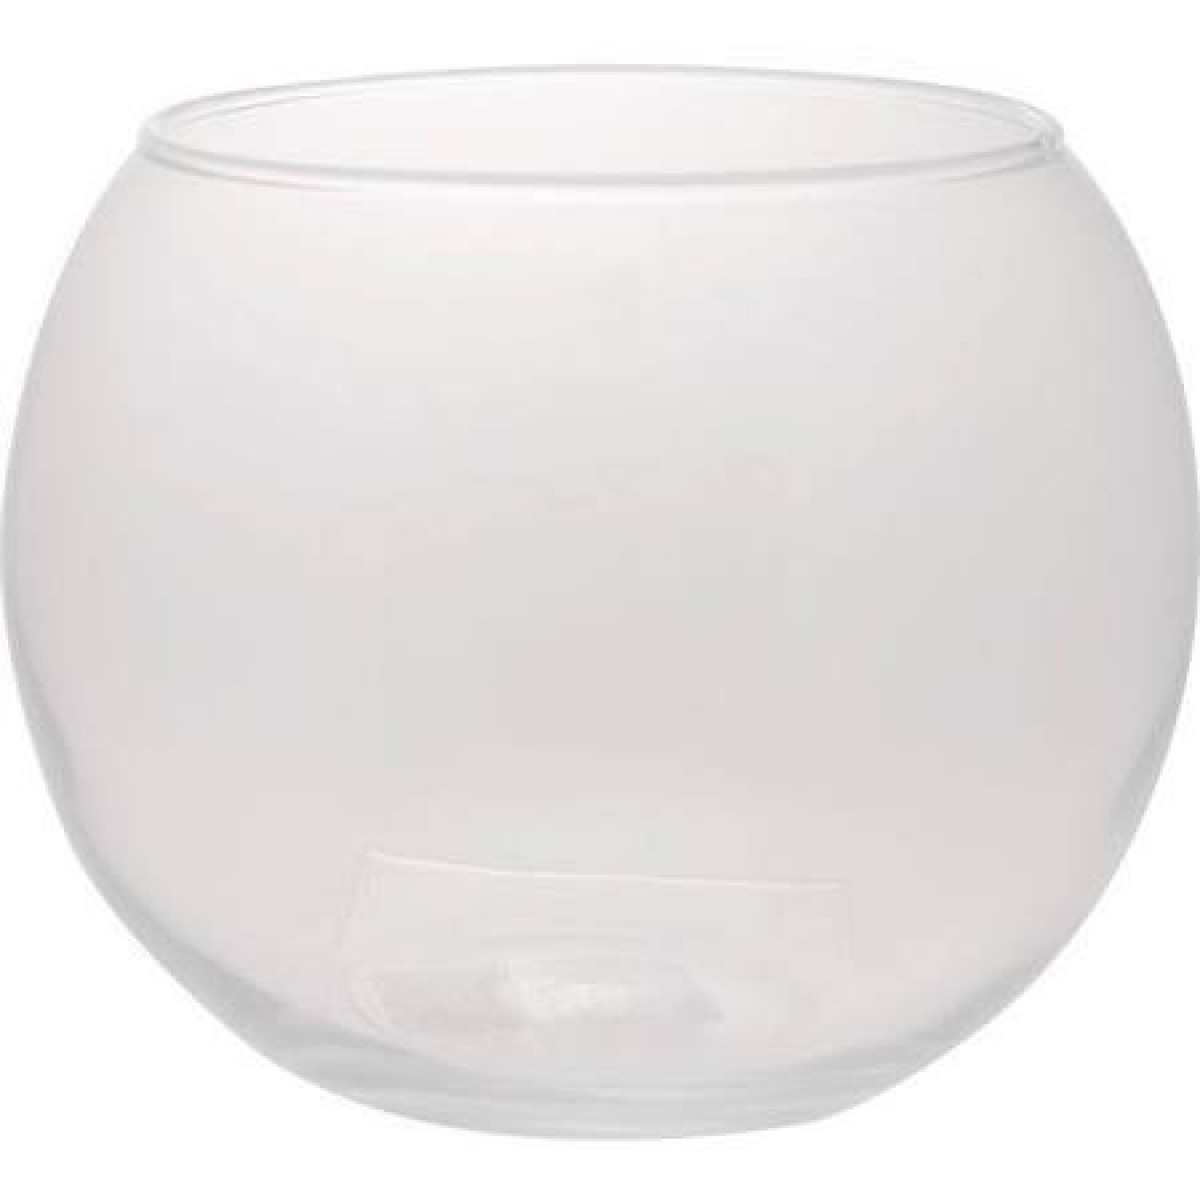 "Medium Fishbowl (8"") in the Hire Glassware category"